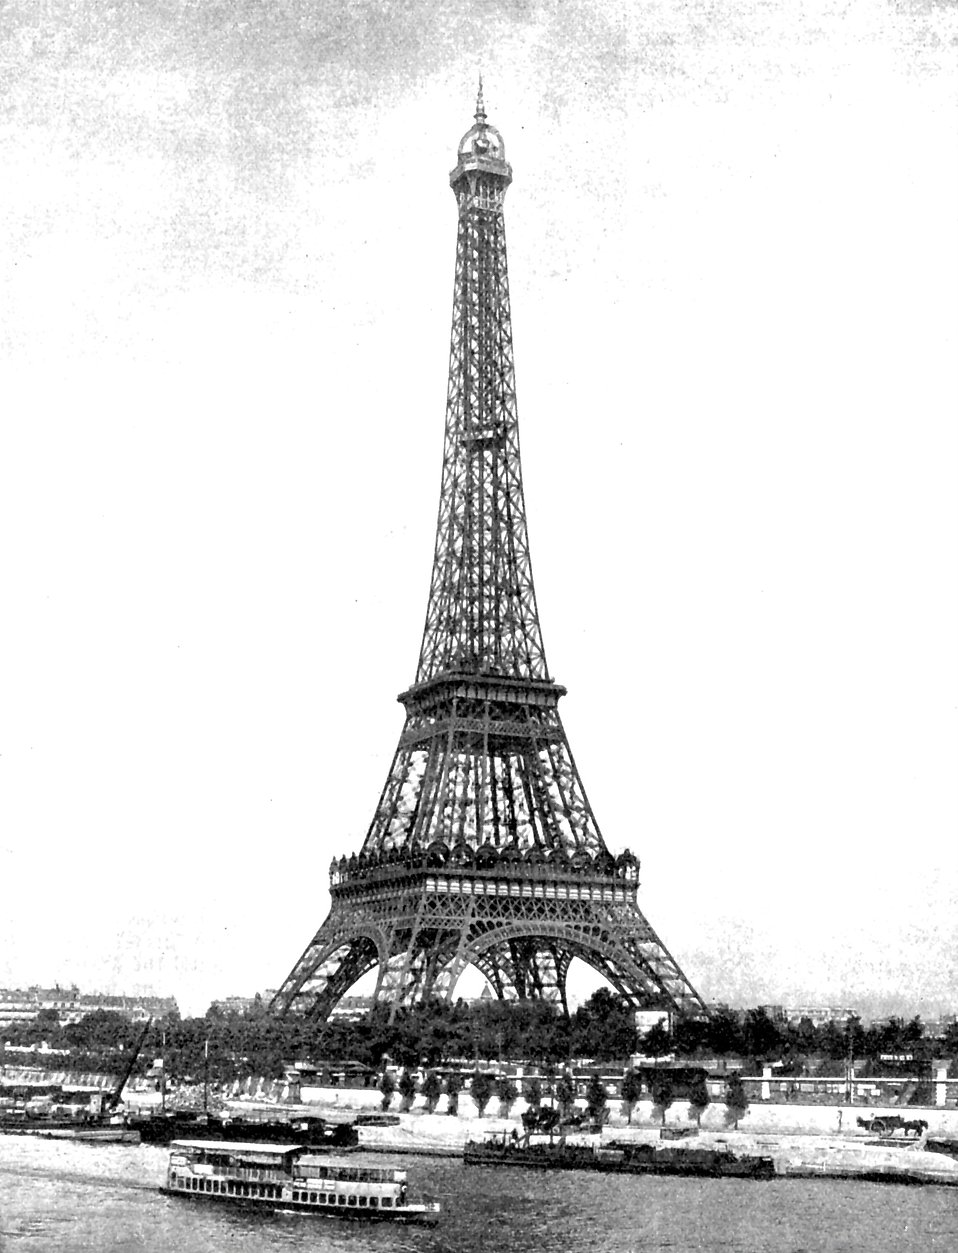 Vintage photo of the Eiffel Tower in Paris, France : Free Stock Photo